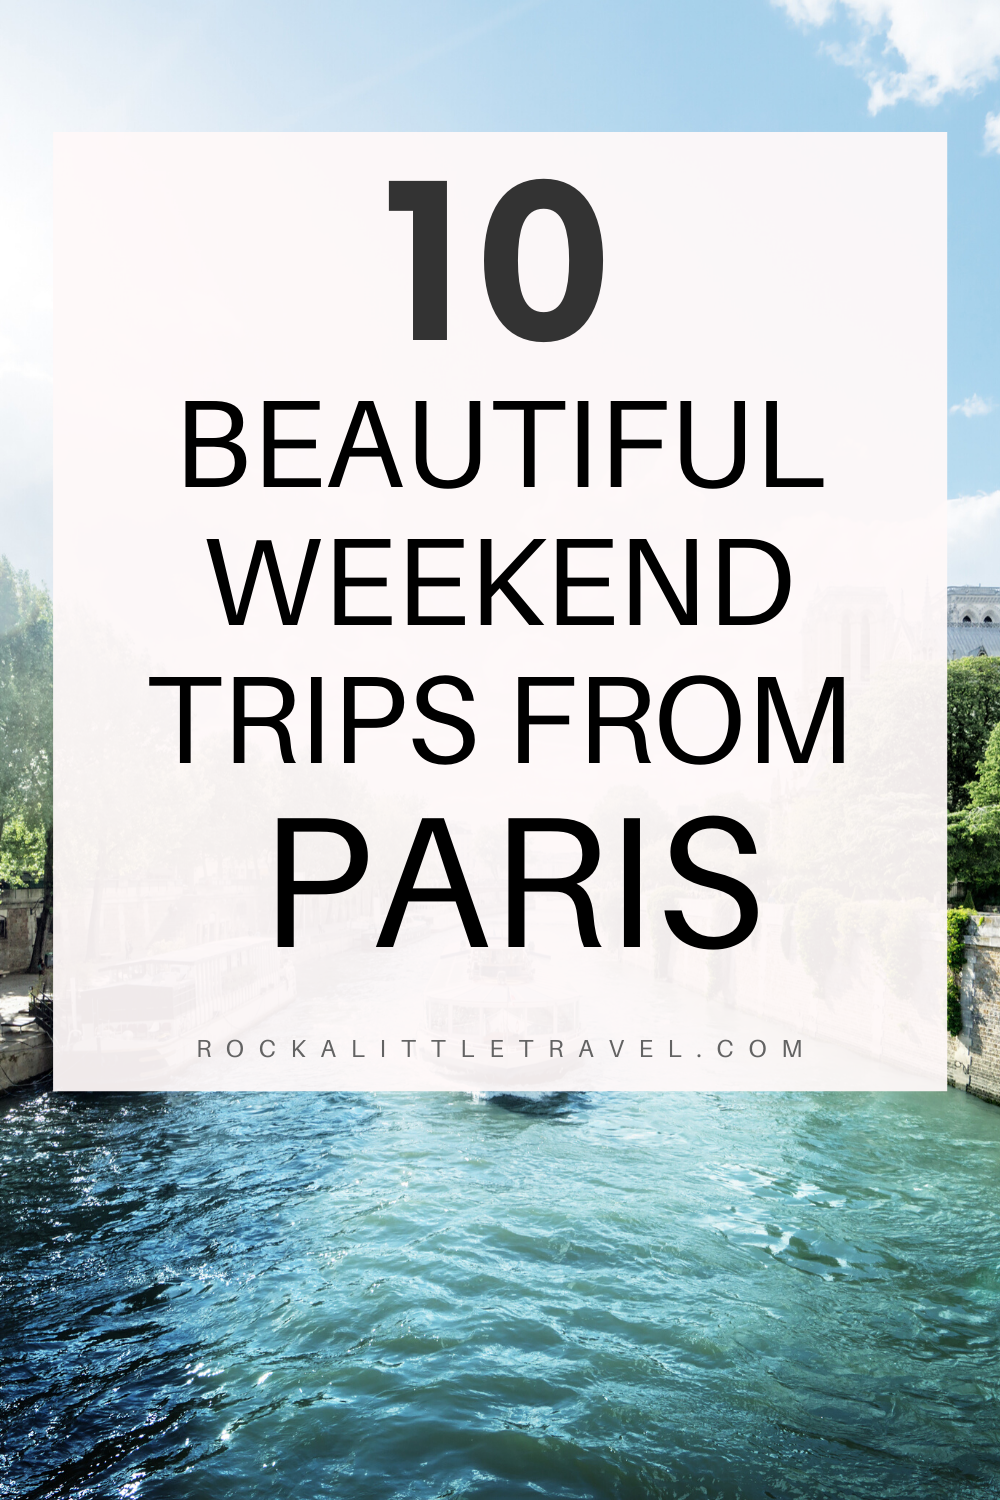 Paris Is More Than An Amazing City Or A Global Metropolis That It Is It Is A Living And Breathing Legend An Icon That Wi Paris Flights To Paris Paris Travel